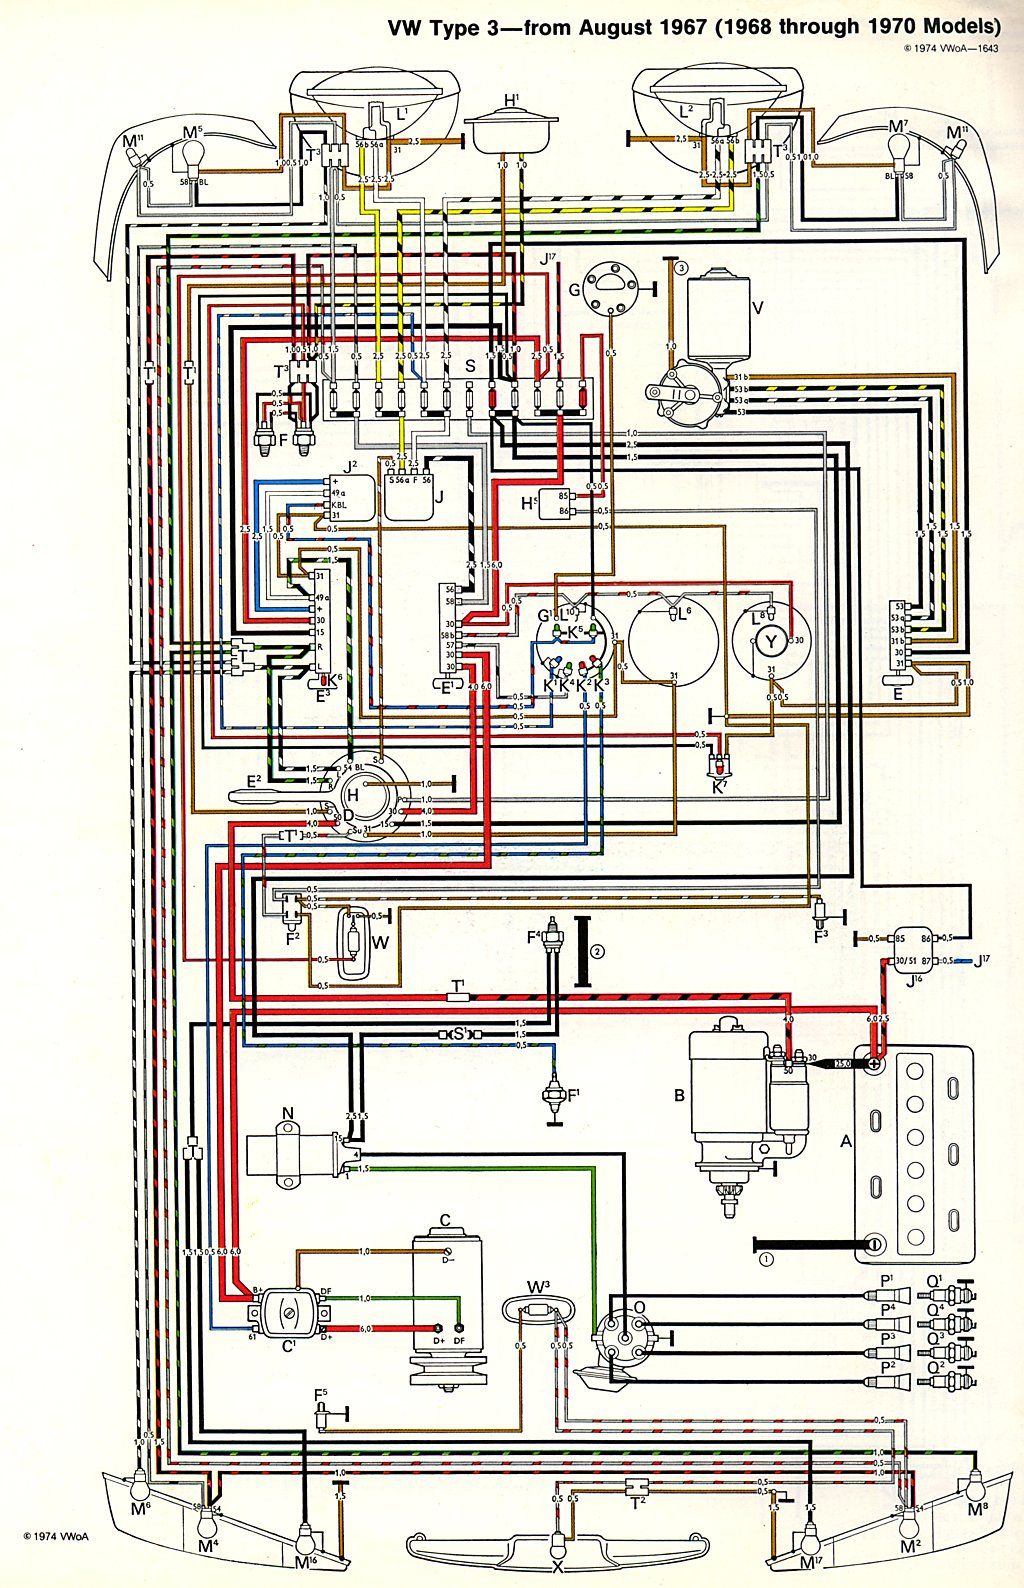 type3_6870 vw thing wiring diagram 1974 beetle heater diagram \u2022 wiring 1971 vw bus wiring diagram at highcare.asia